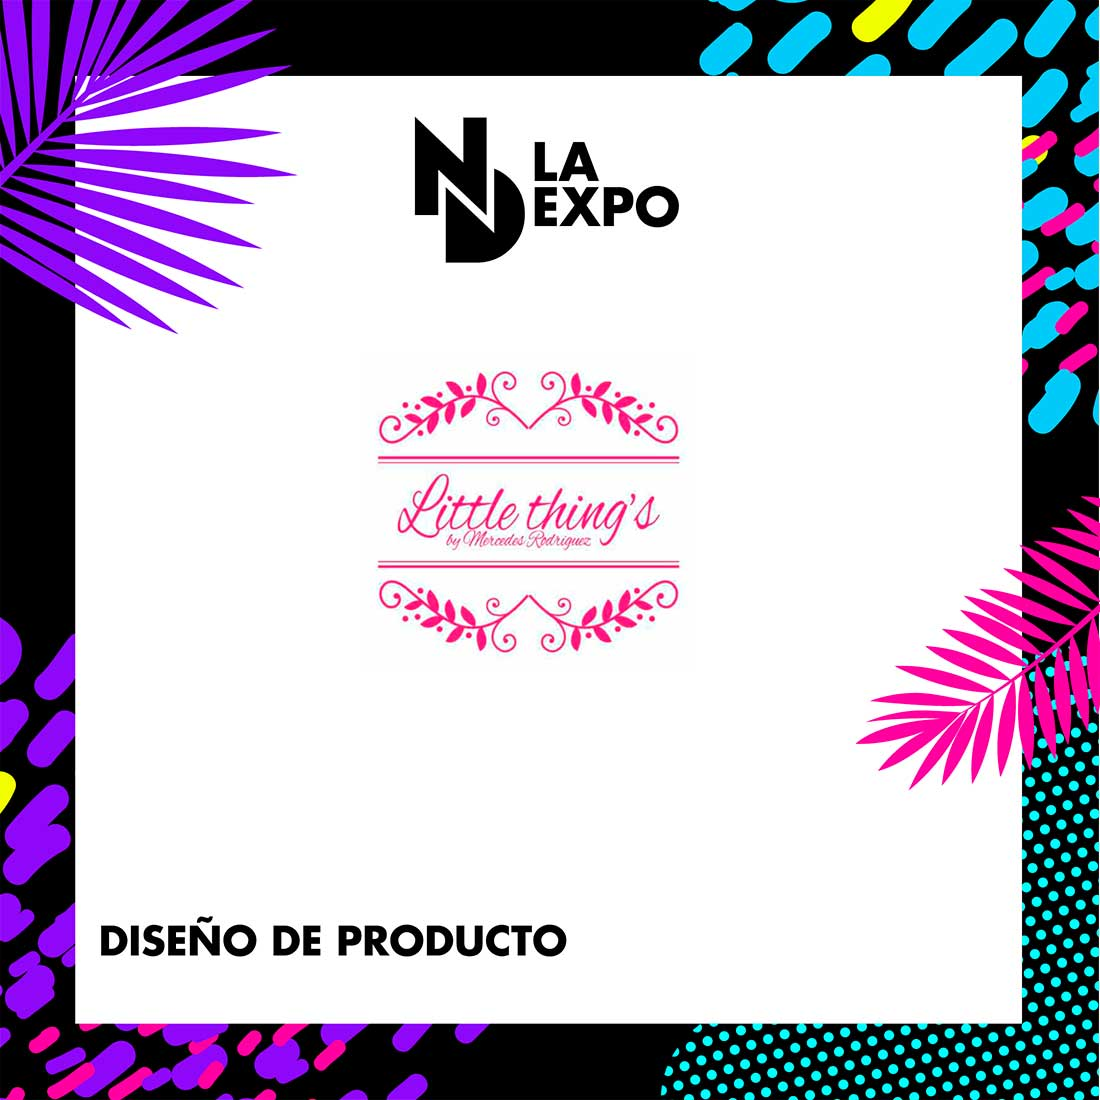 Lttle-Things-2018-producto-diseño